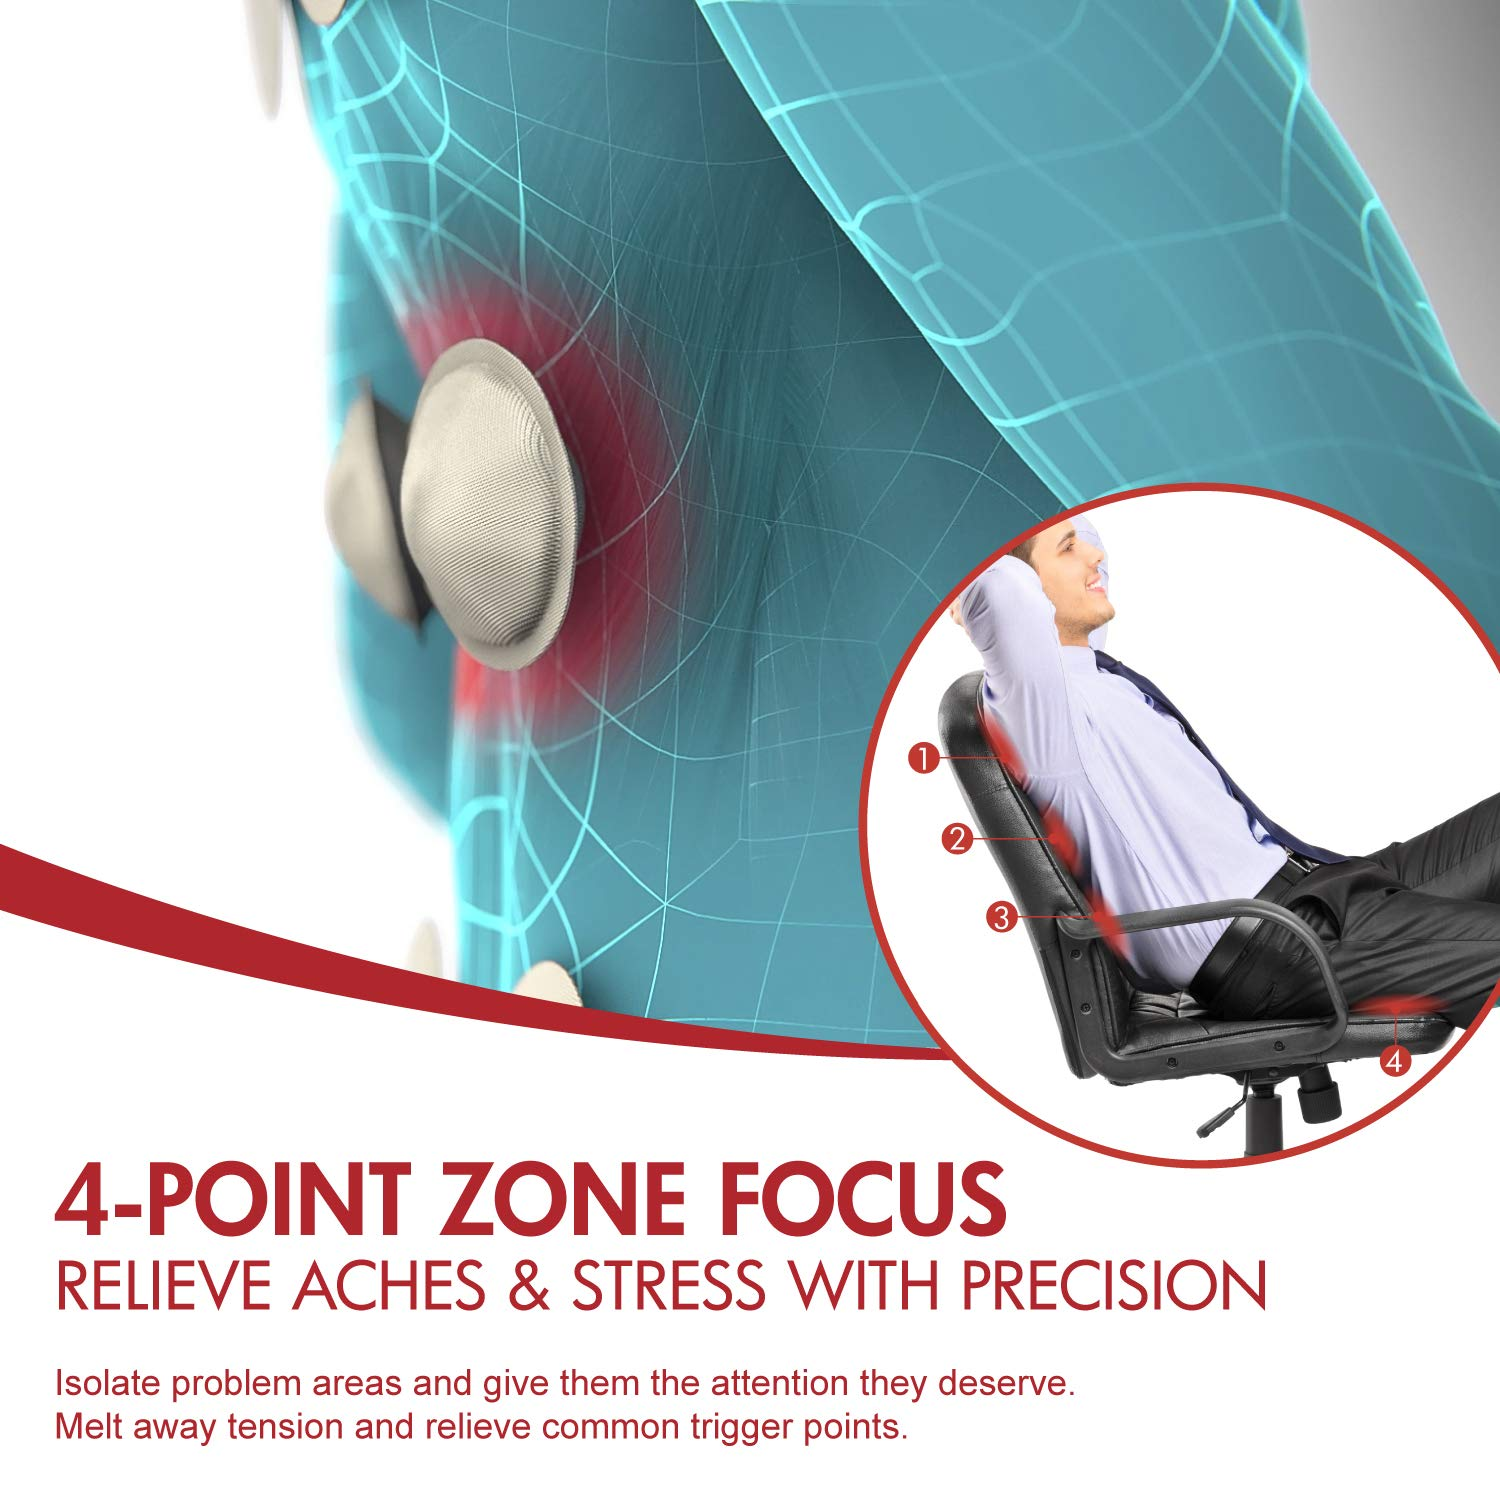 Viotek Air Comfort Massage Cushion | Shiatsu Relief for Gaming or Office Chair, Car Seat | 4-Point Targeting for Shoulders, Back and Leg Massager for Circulation by Viotek (Image #3)